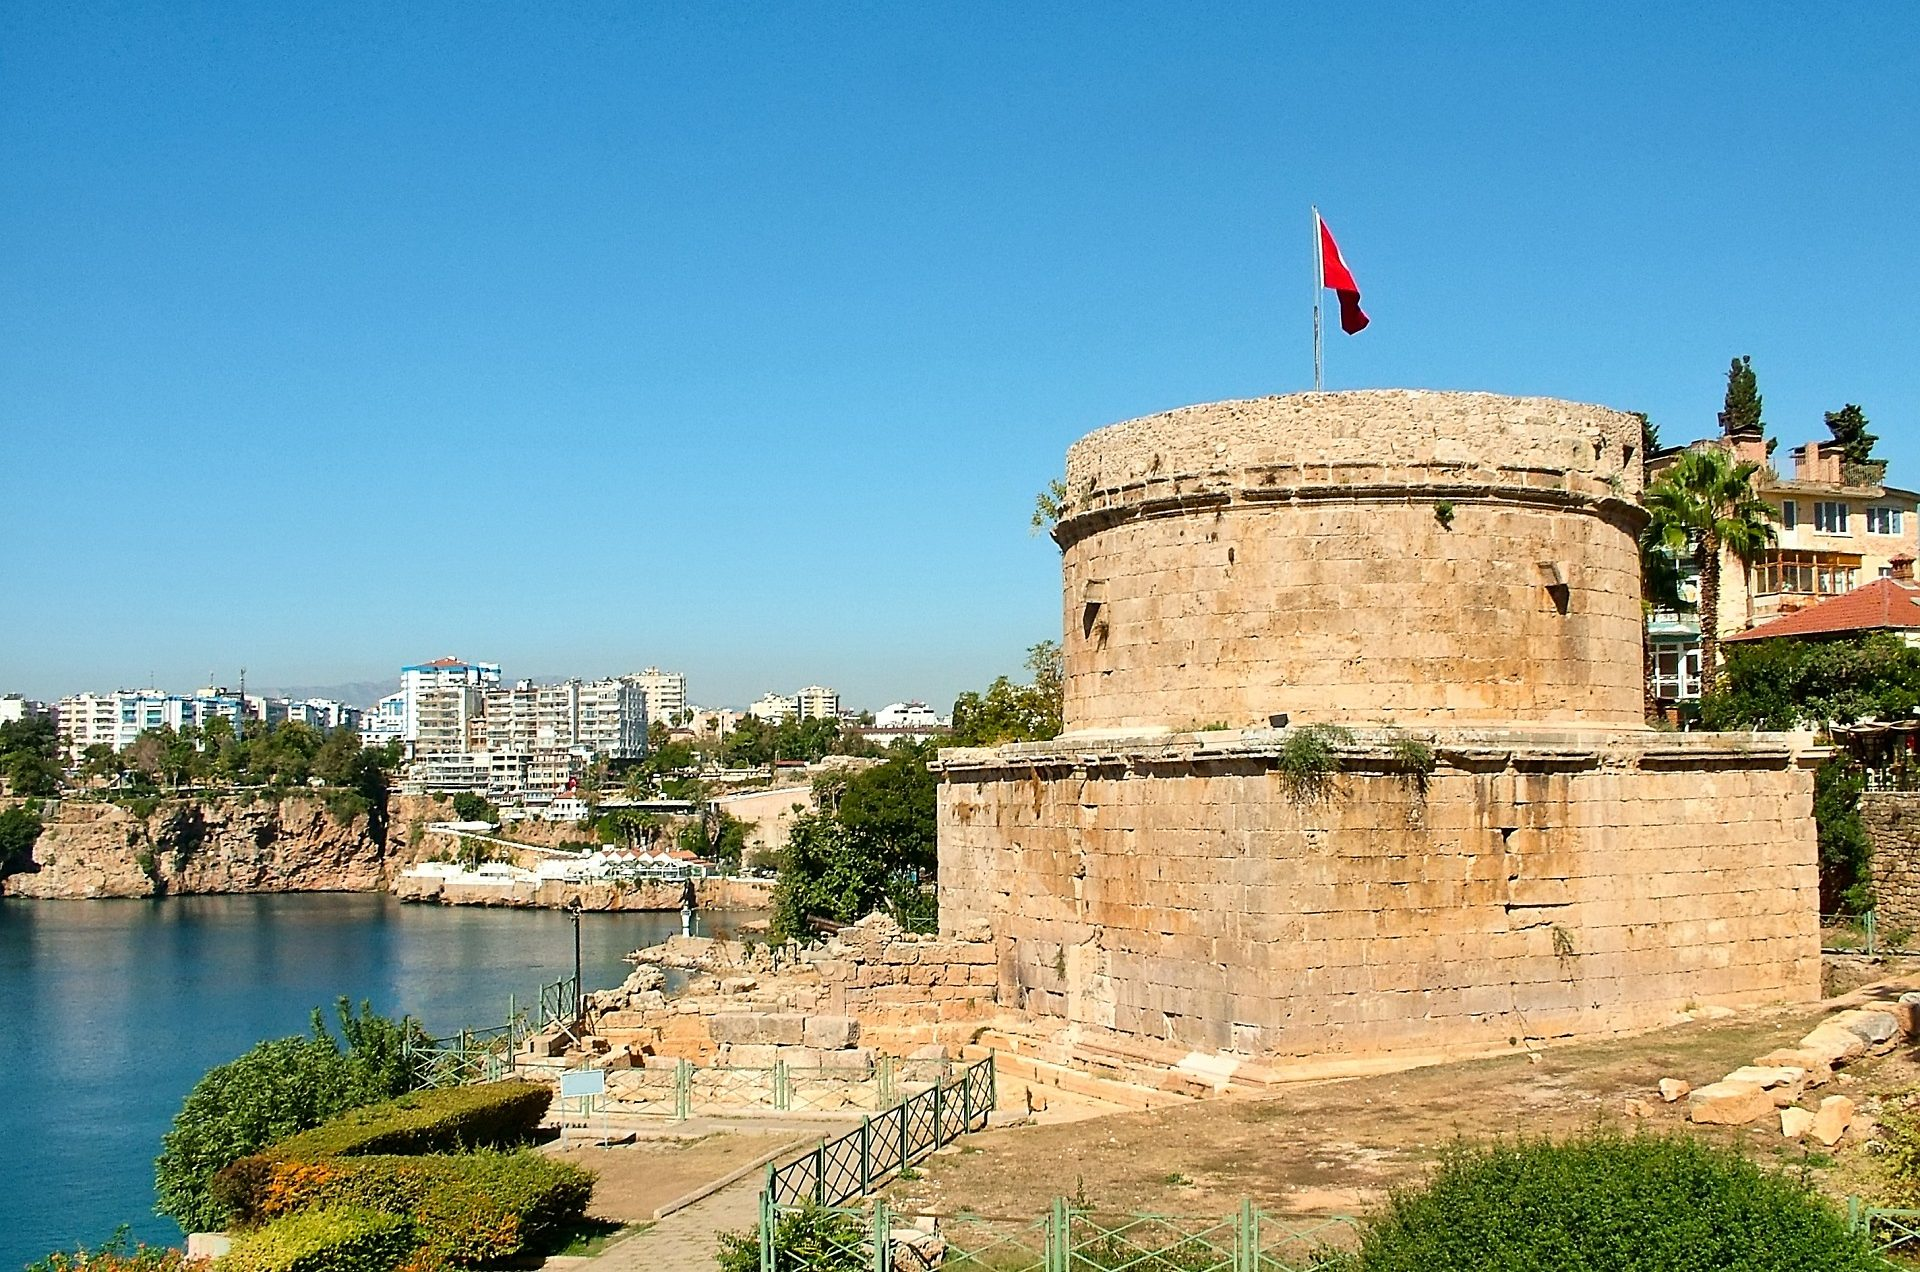 Hidirlik Turm in Antalya